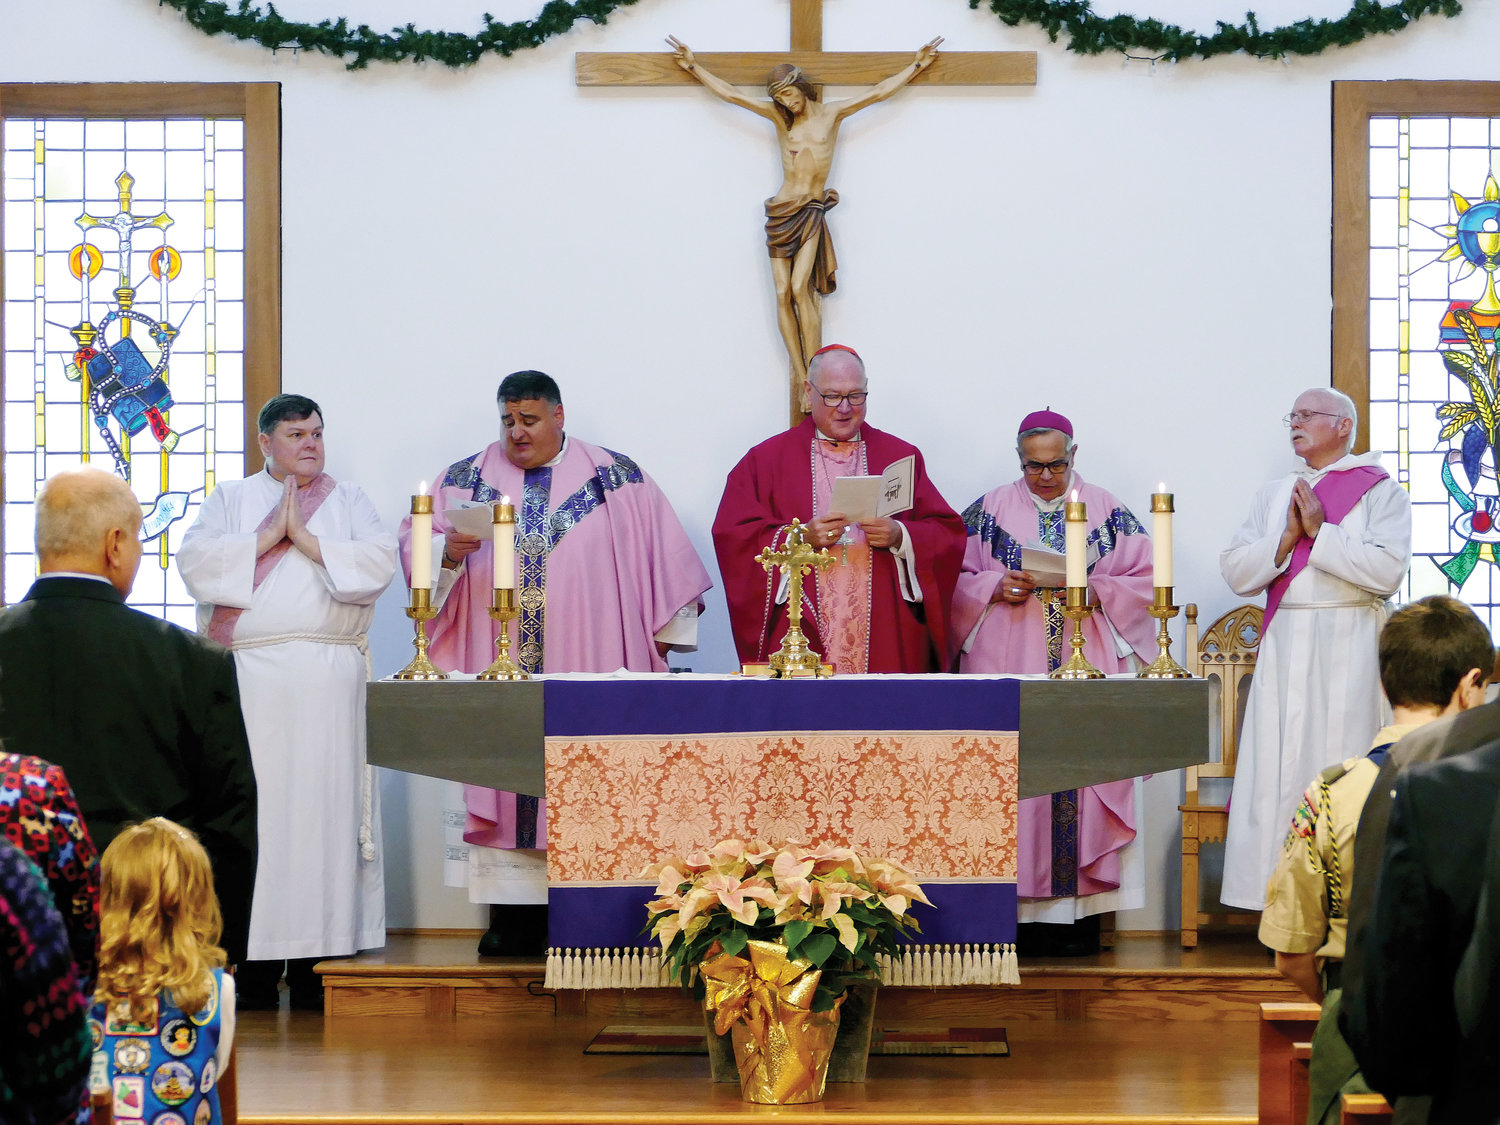 Cardinal Dolan, center, celebrates Mass to mark the 50th anniversary of Holy Cross Church in Middletown Dec. 15. Joining the cardinal on the altar are, from left, Edmund Lazzari, a candidate for the permanent diaconate; Father Michael Cedro, pastor of Holy Cross; Auxiliary Bishop Dominick Lagonegro; and Deacon Barney Kahn.